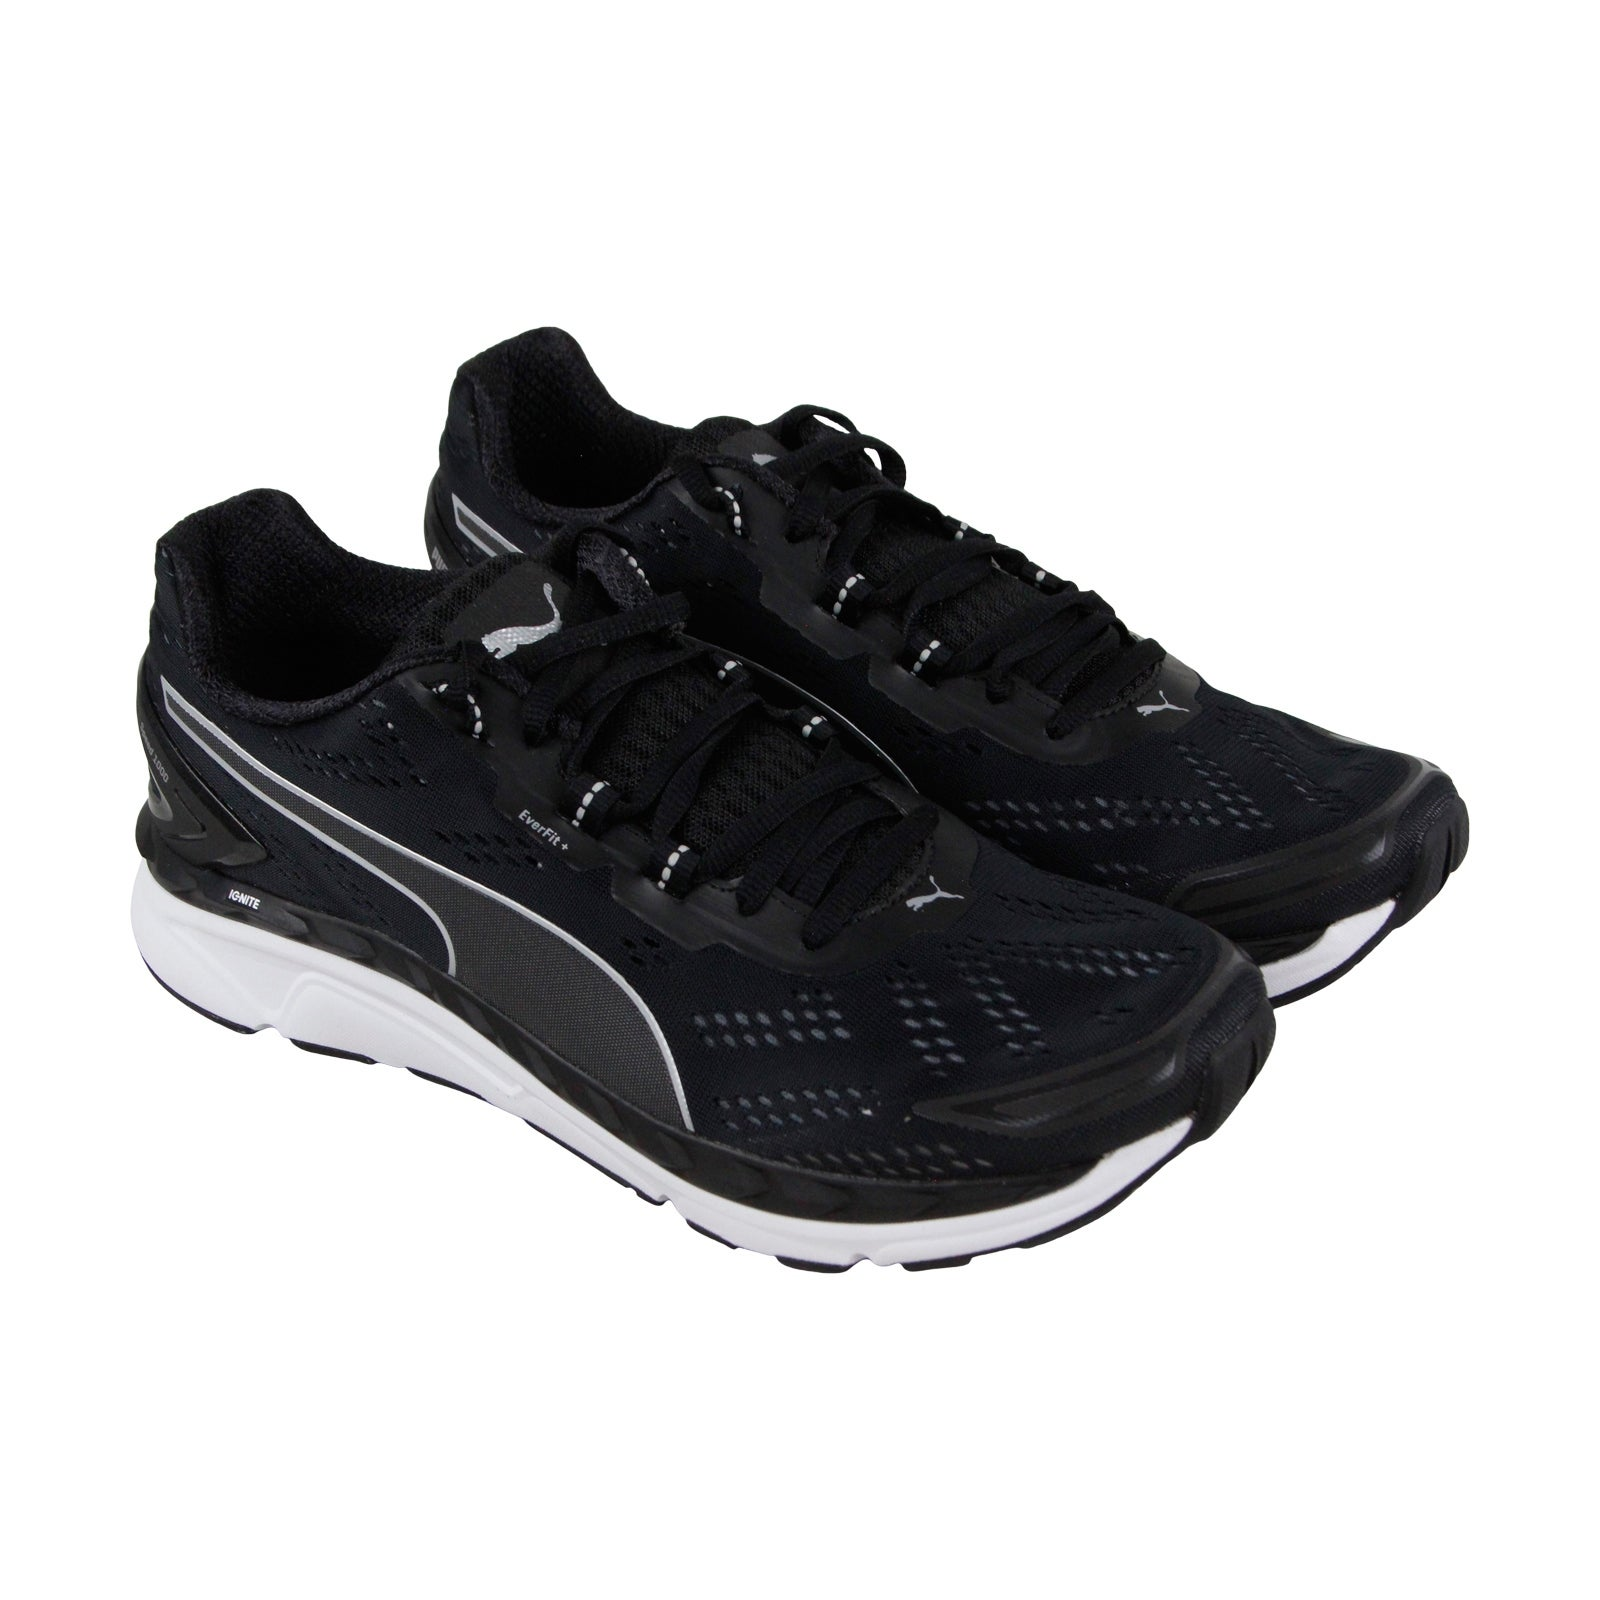 febdbd9d8bd Puma Speed 1000 Ignite Mens Black Textile Athletic Lace Up Running Shoes